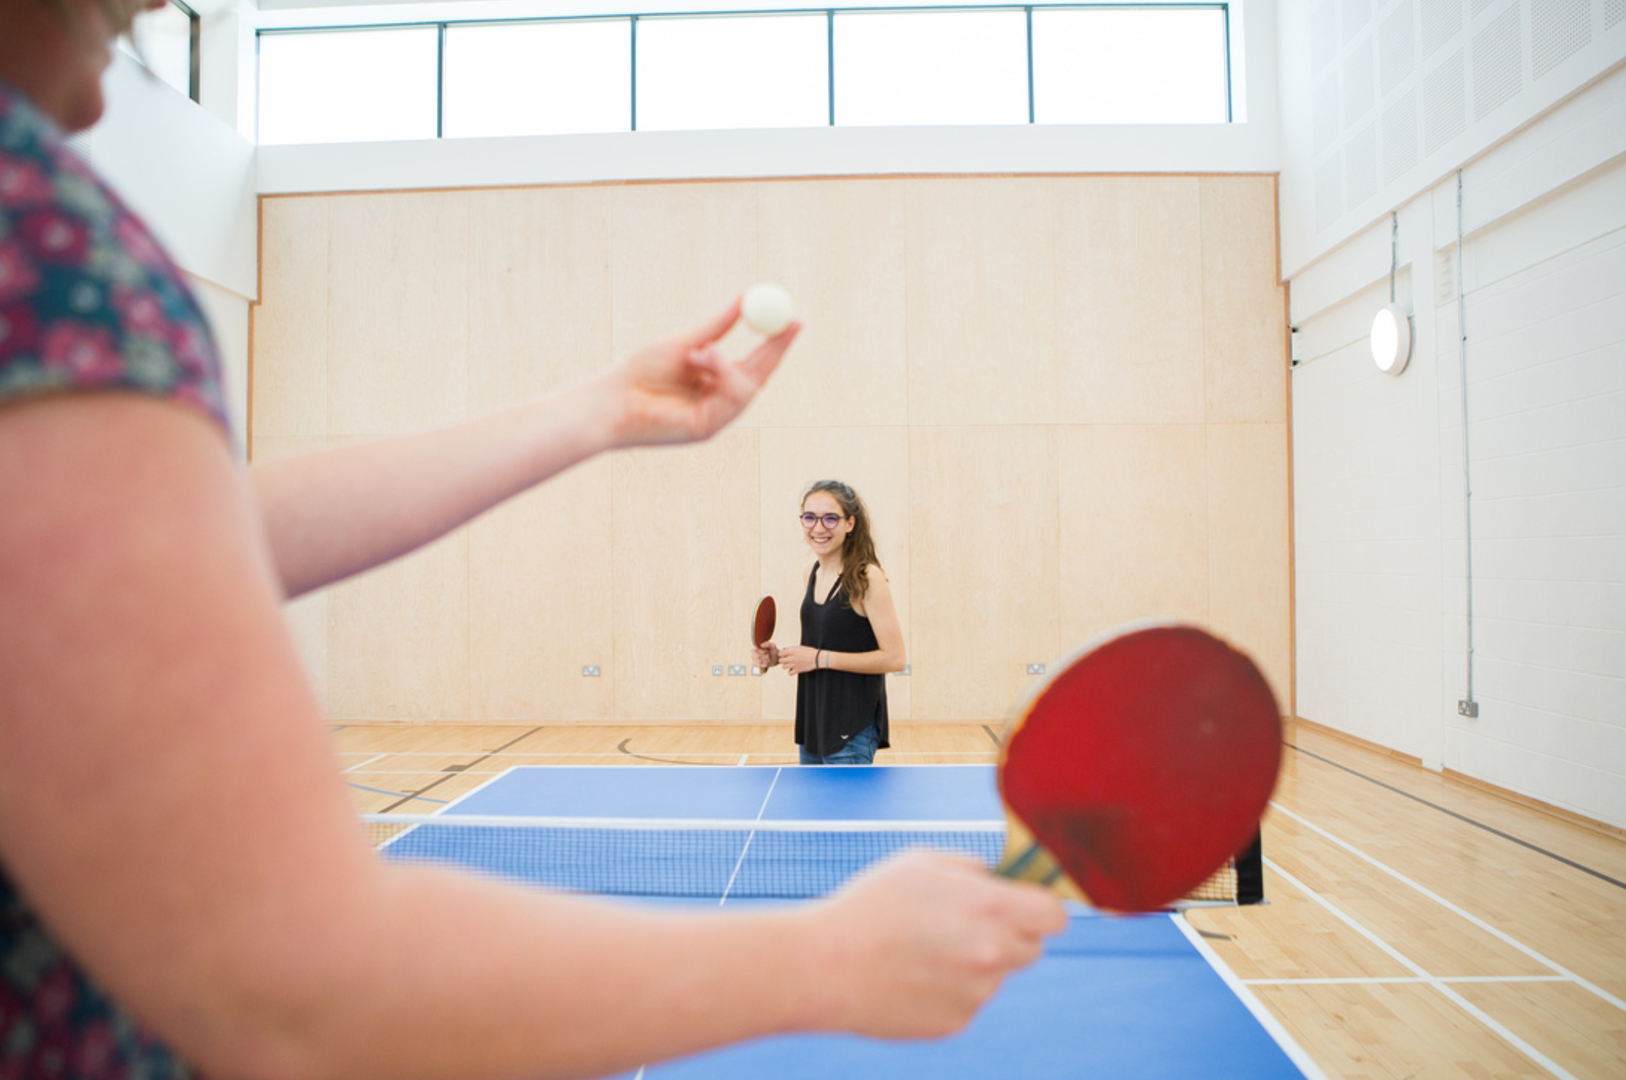 Table tennis 002.png